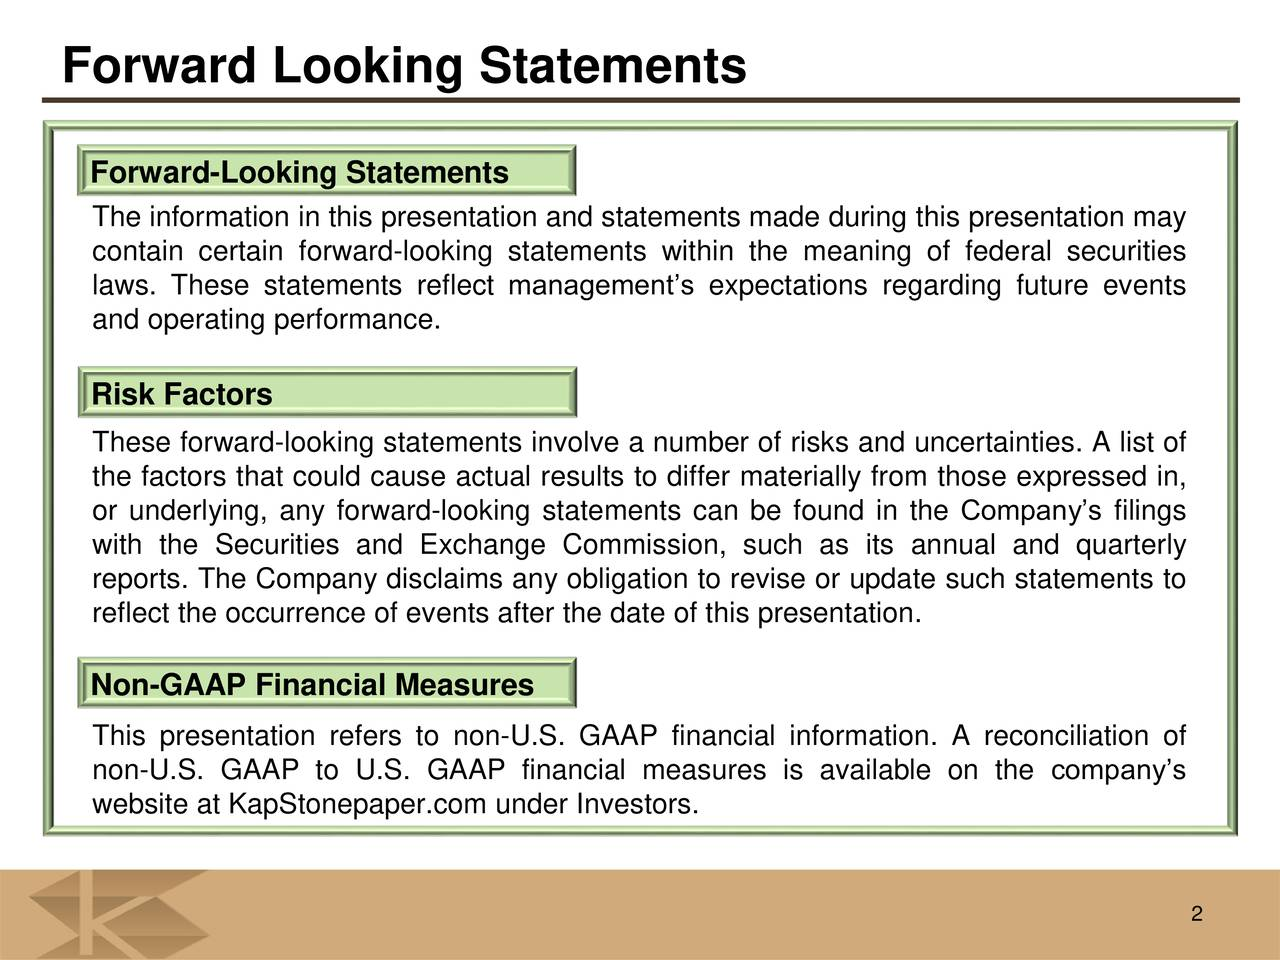 Forward-Looking Statements The information in this presentation and statements made during this presentation may contain certain forward-looking statements within the meaning of federal securities laws. These statements reflect managements expectations regarding future events and operating performance. Risk Factors These forward-looking statements involve a number of risks and uncertainties. A list of the factors that could cause actual results to differ materially from those expressed in, or underlying, any forward-looking statements can be found in the Companys filings with the Securities and Exchange Commission, such as its annual and quarterly reports. The Company disclaims any obligation to revise or update such statements to reflect the occurrence of events after the date of this presentation. Non-GAAP Financial Measures This presentation refers to non-U.S. GAAP financial information. A reconciliation of non-U.S. GAAP to U.S. GAAP financial measures is available on the companys website at KapStonepaper.com under Investors. 2